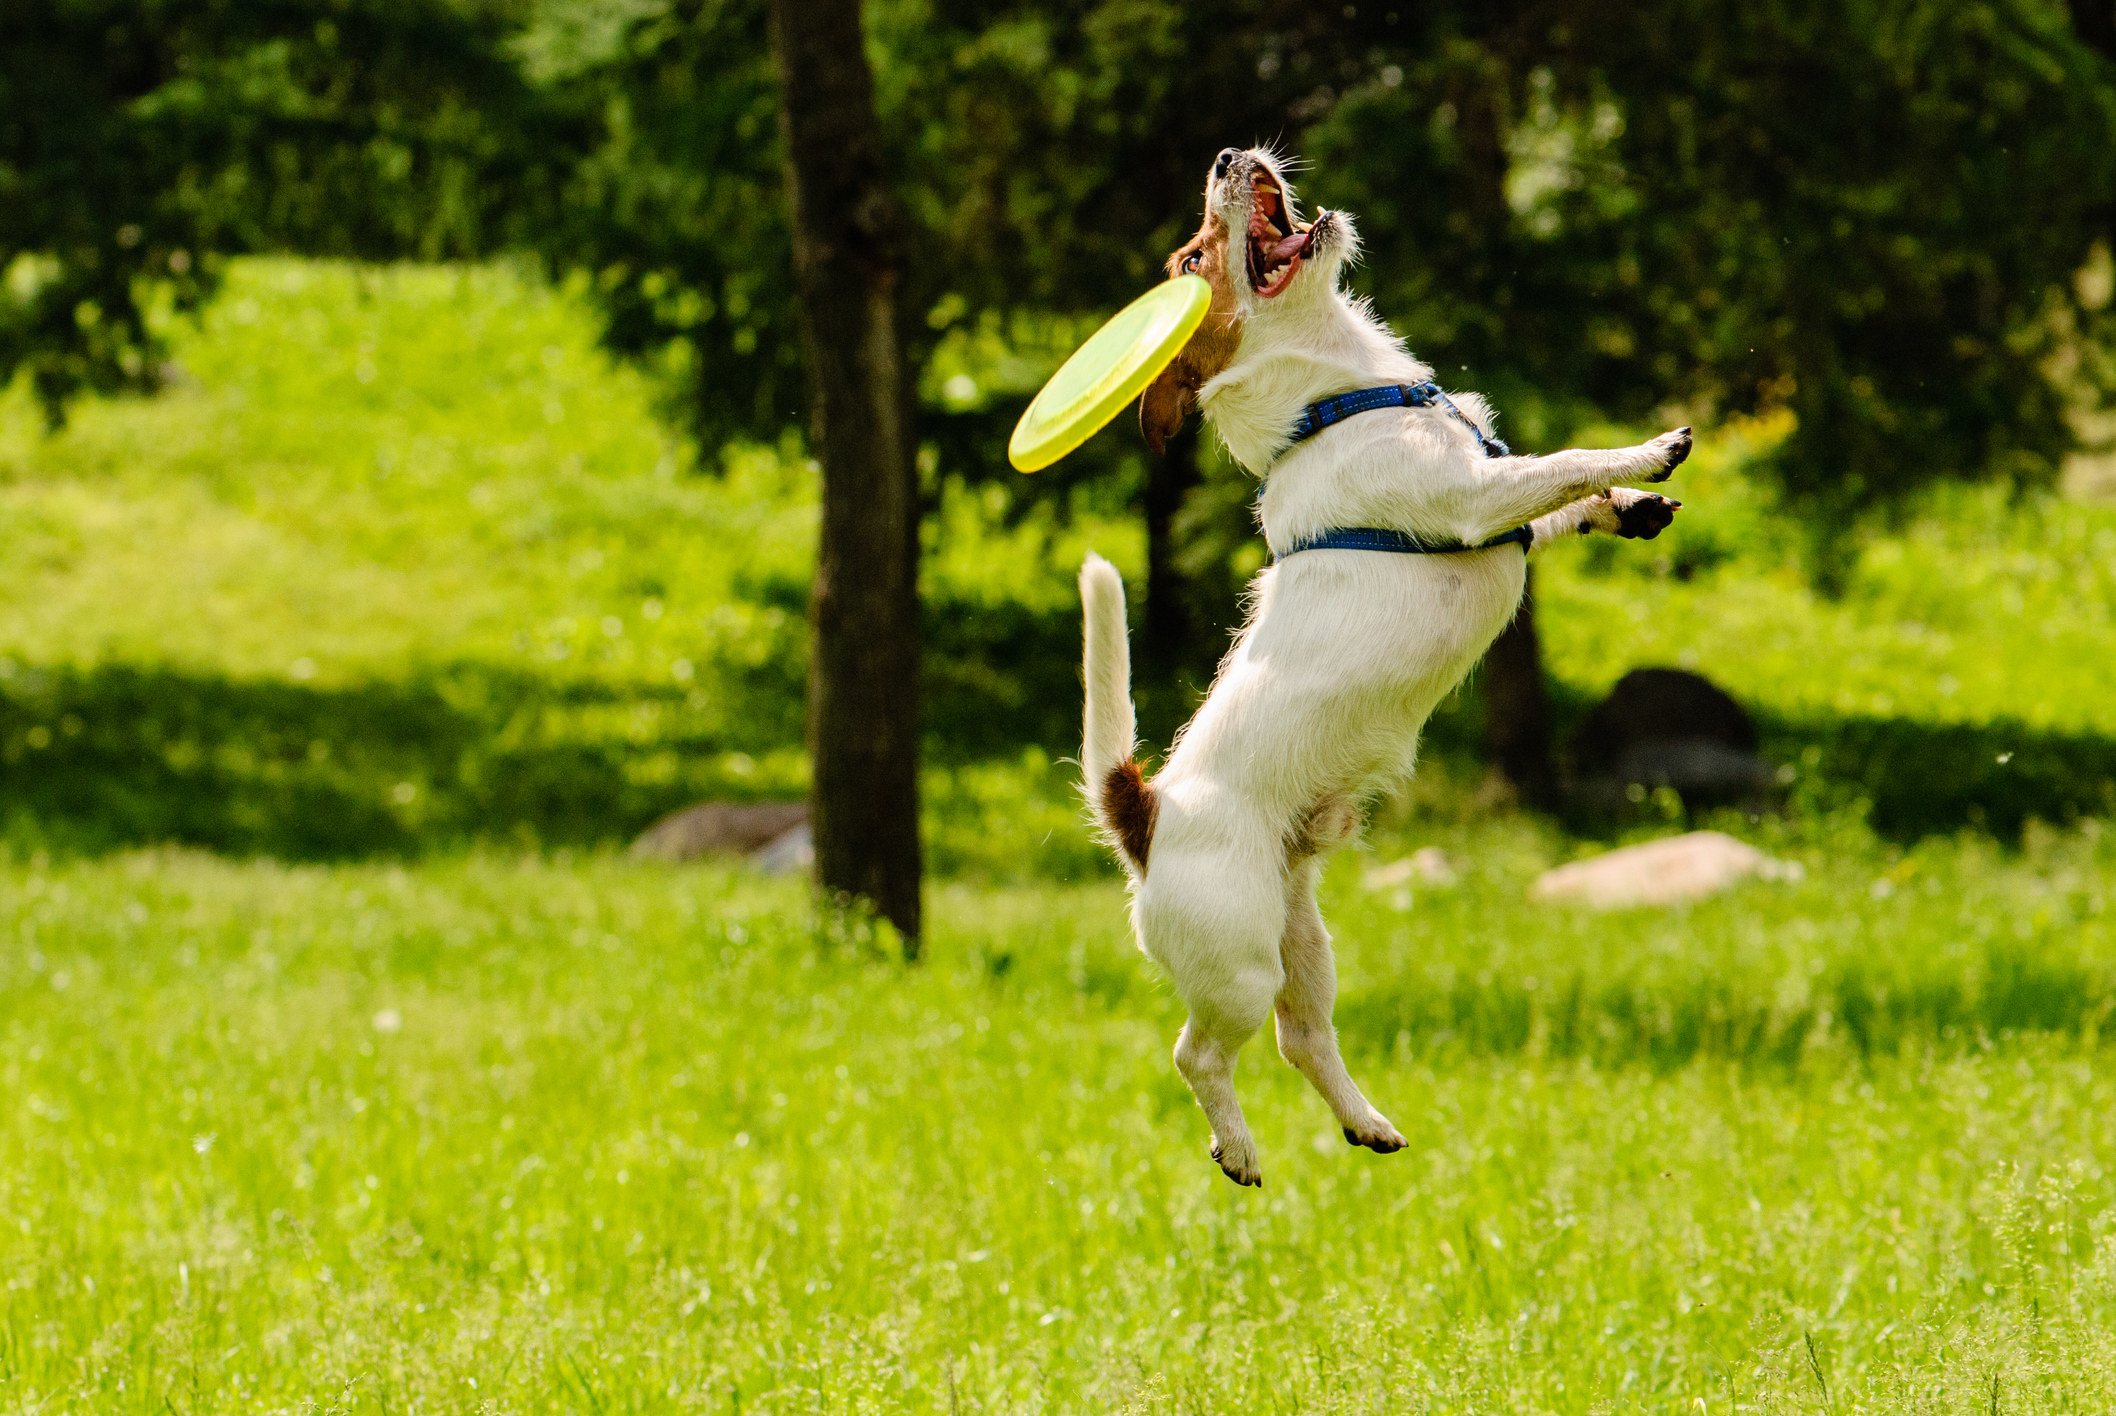 Jack Russell Terrier jumping and missing a frisbee at the park